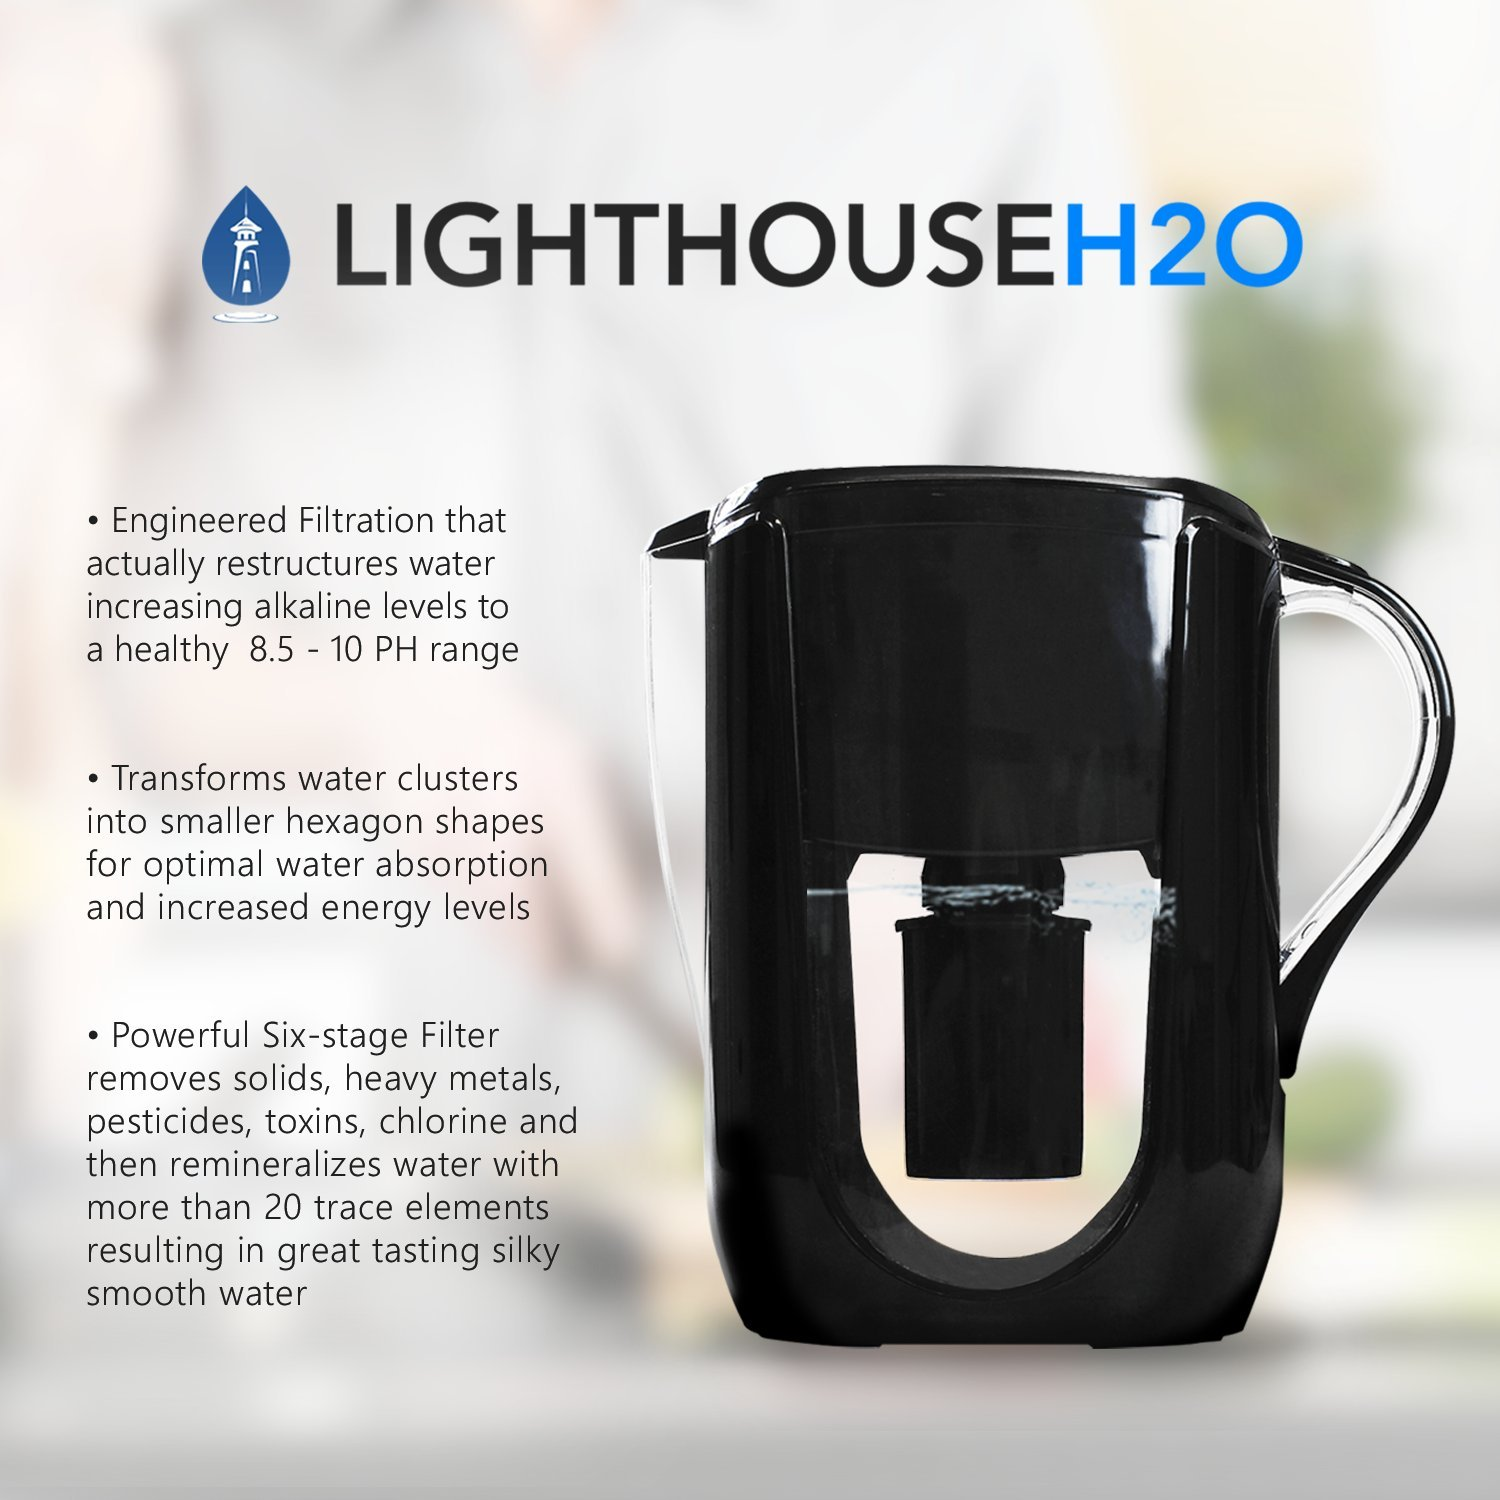 Lighthouse H2O Alkaline Water Filter Pitcher Cartridge 2 Pack Replacement for Lighthouse H2O Pitchers